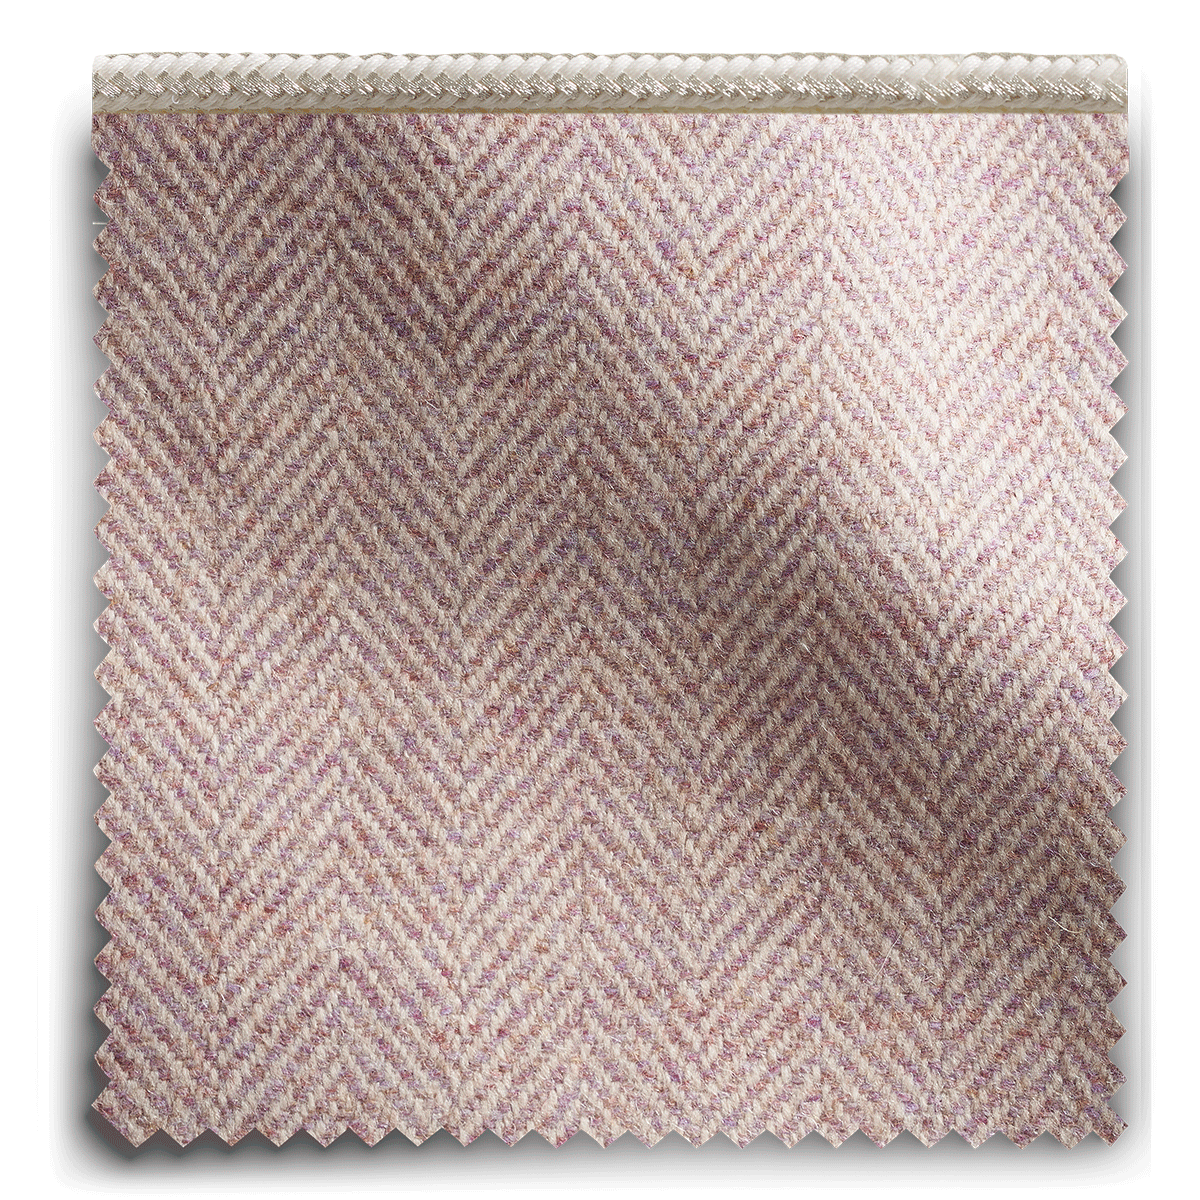 Image of Relaxed Herringbone Heather Pipe fabric